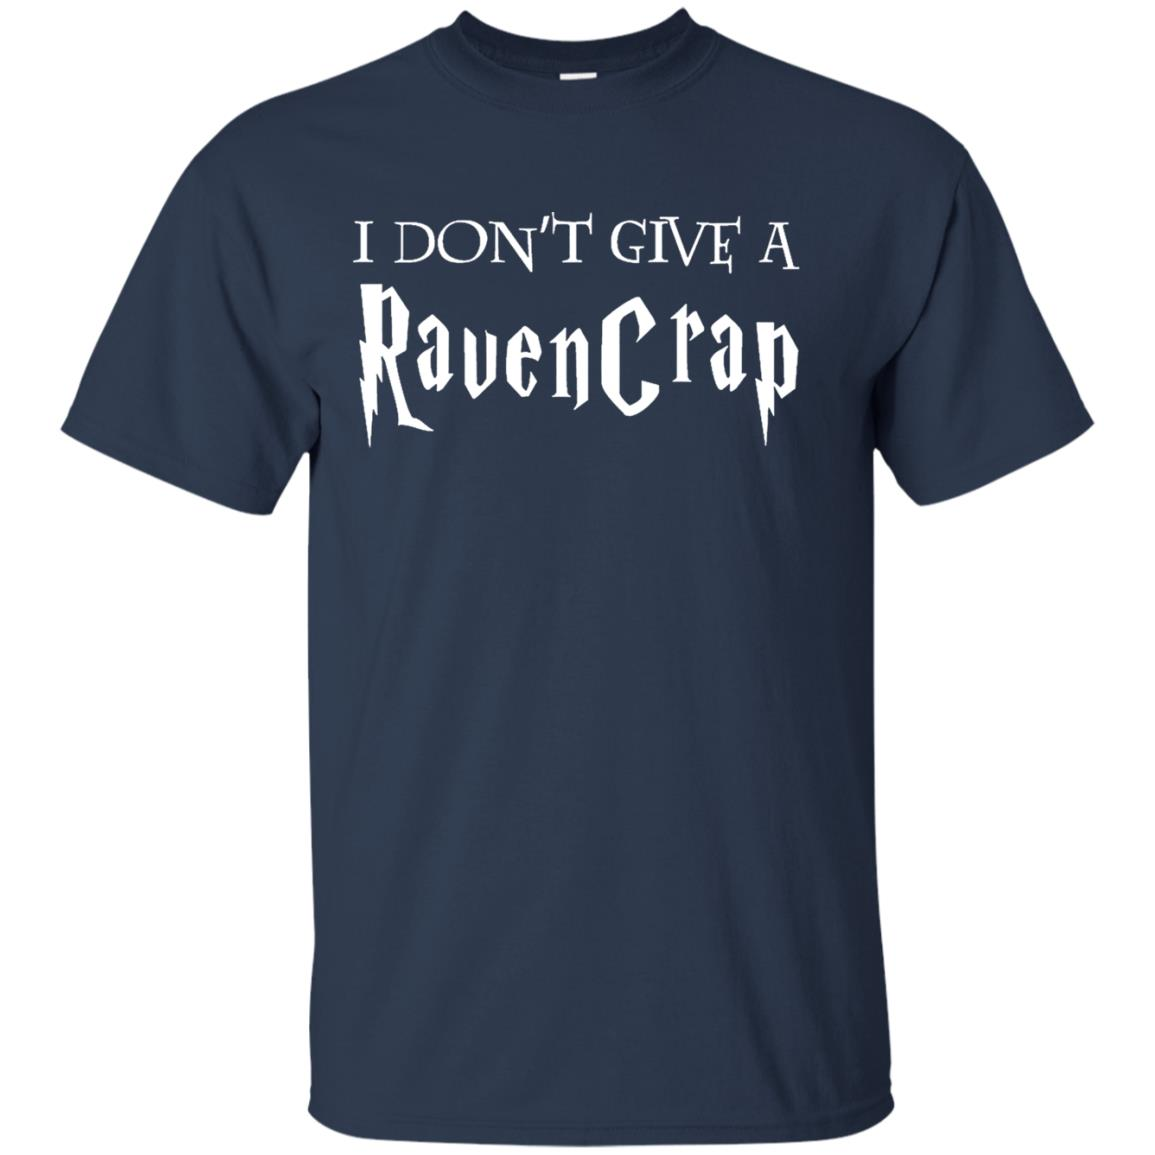 image 687 - Harry Potter: I don't give a Ravencrap shirt & sweater